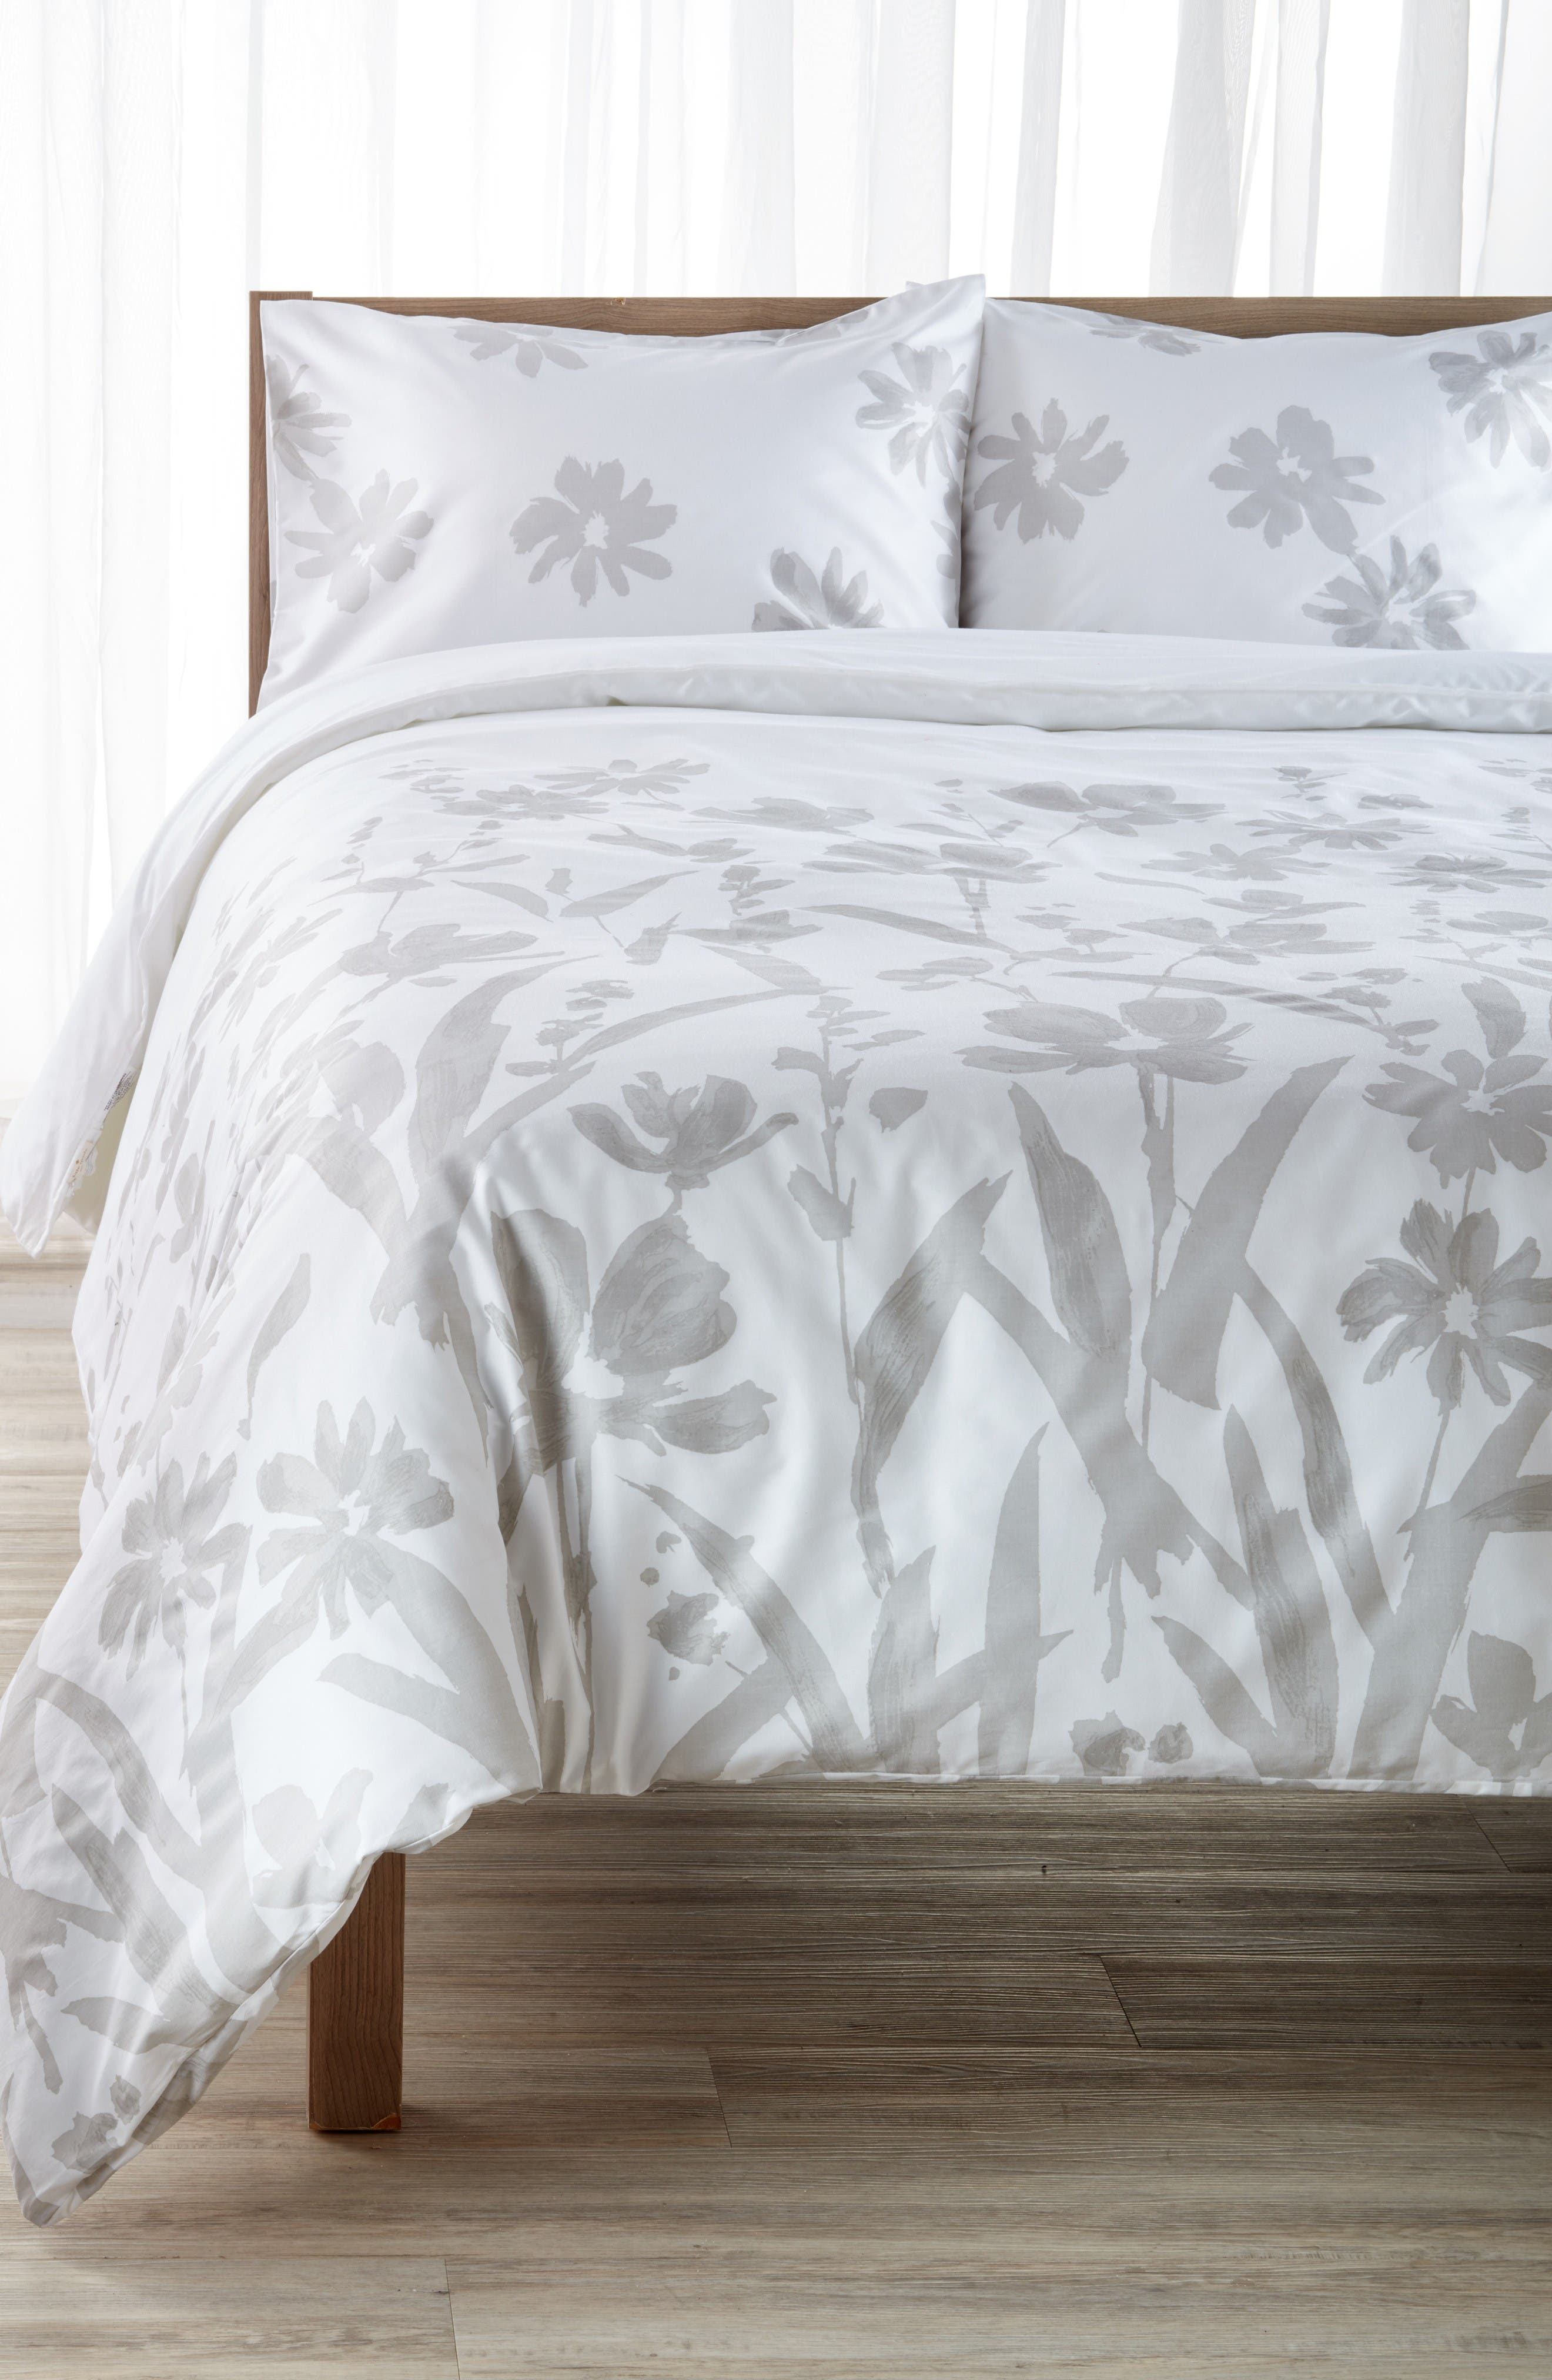 kate spade new york brushstroke garden comforter & sham set